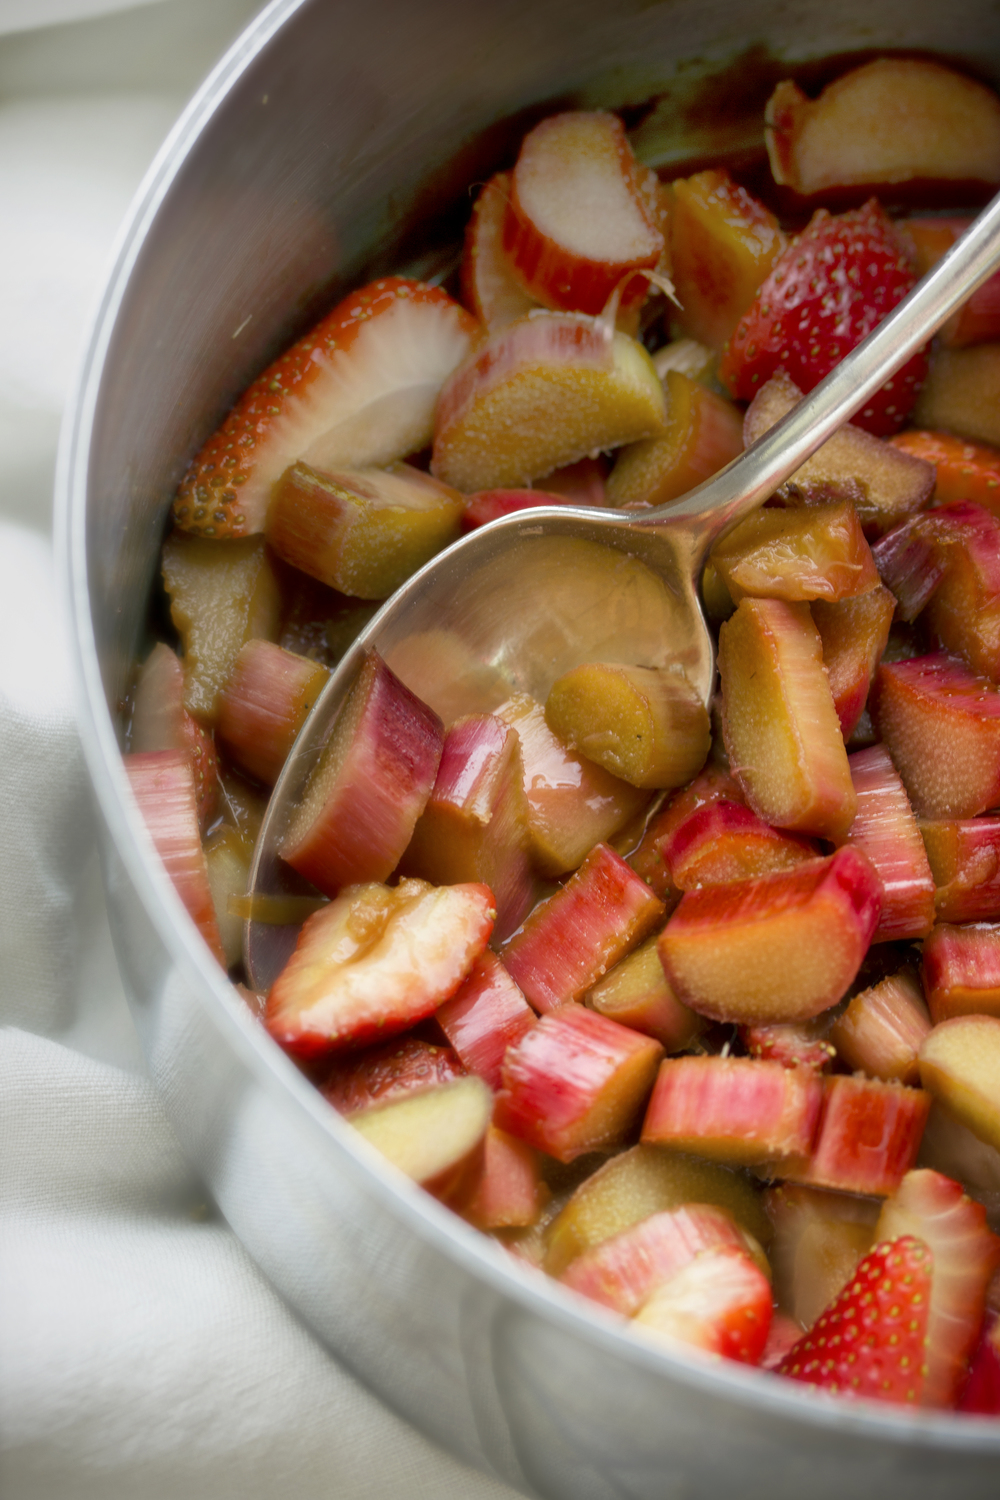 Rhubarb and Strawberries in Pot